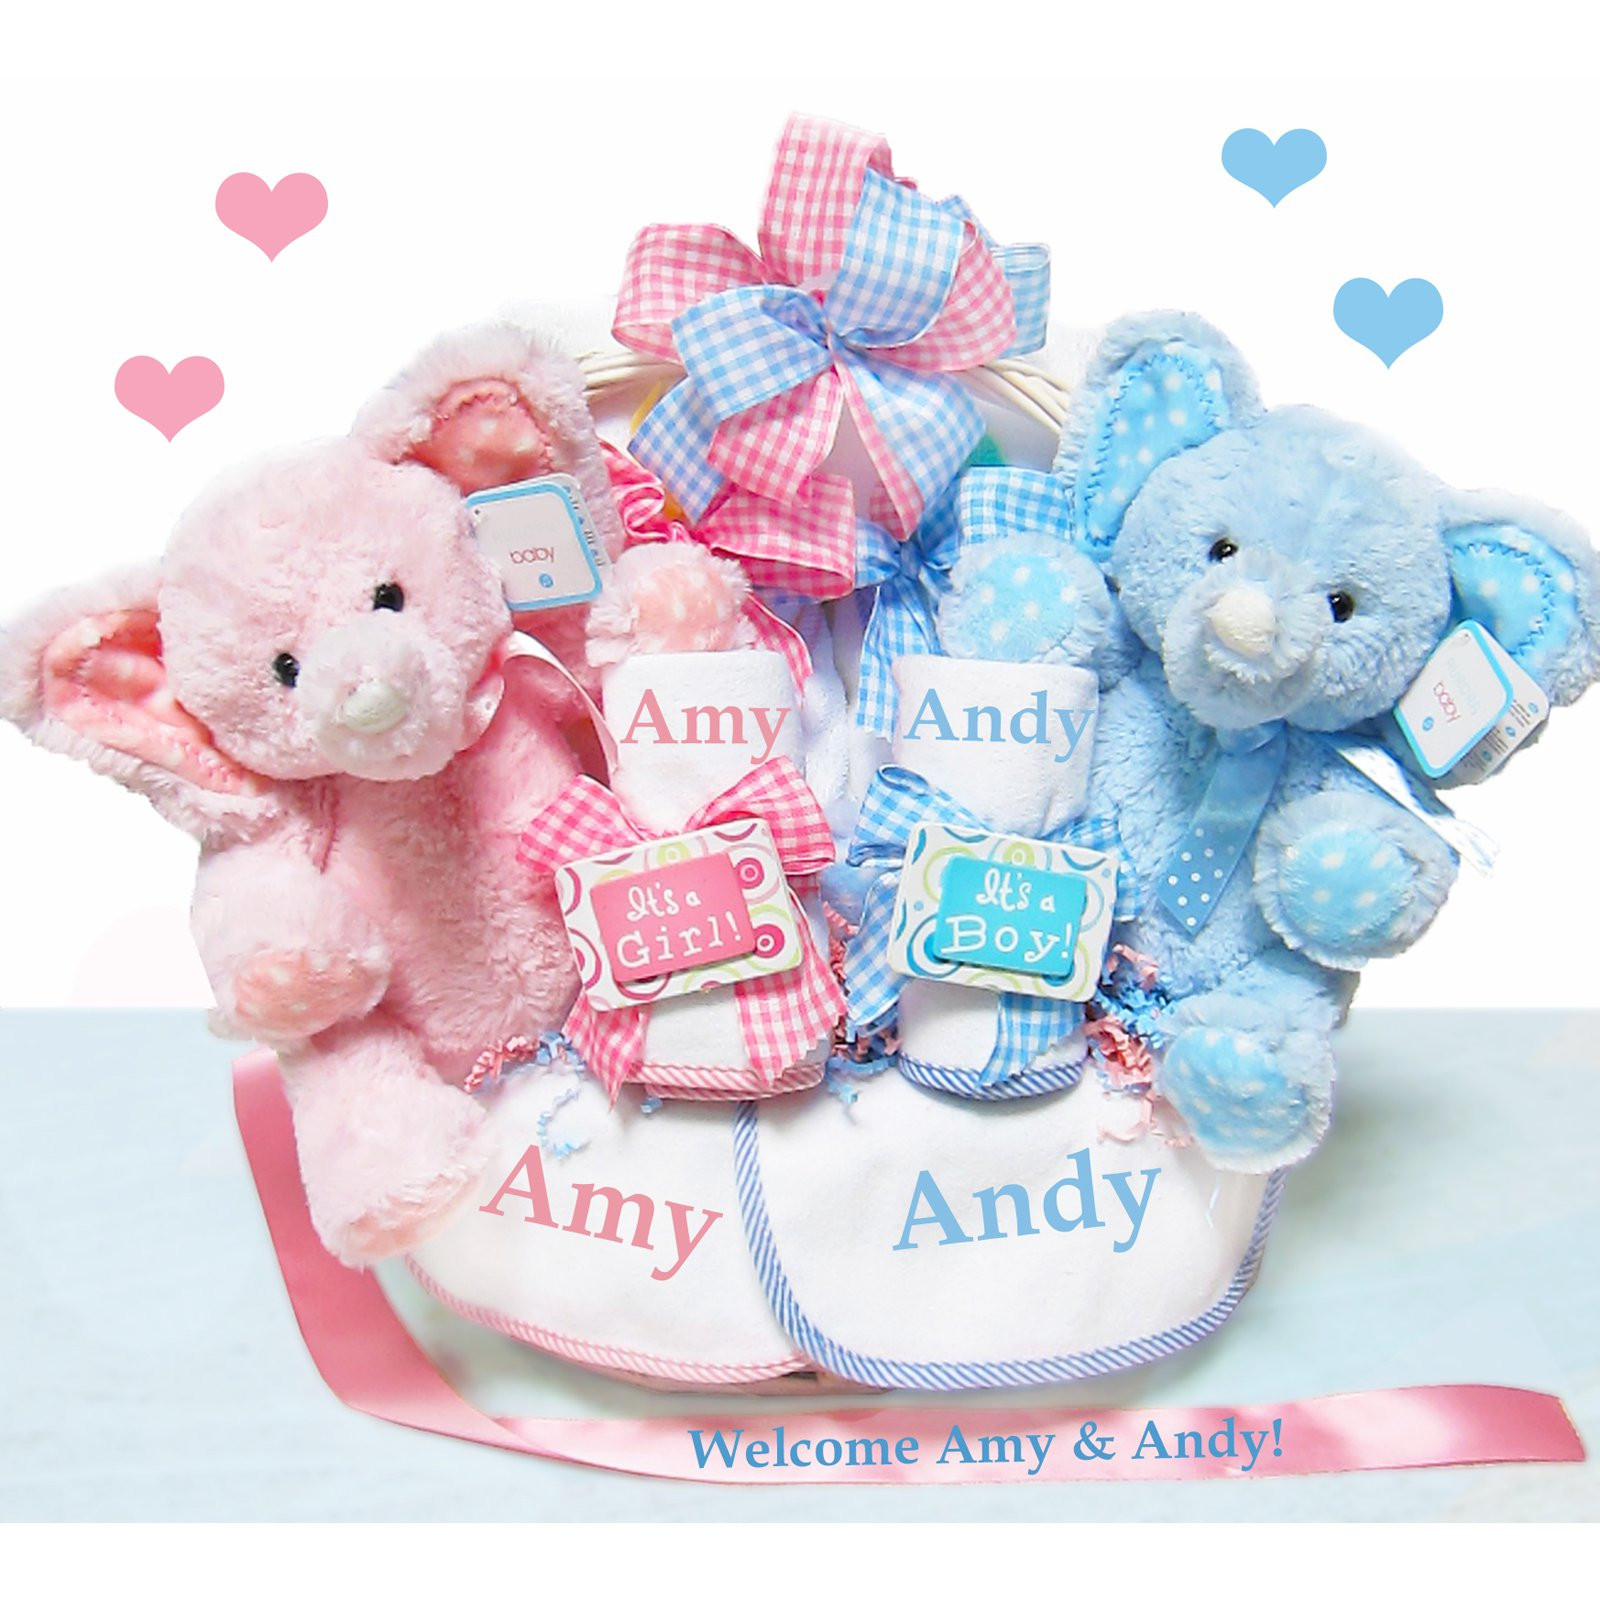 Best ideas about Twin Baby Gift Ideas . Save or Pin Double the Blessings Twins Baby Gift Basket Personalized Now.